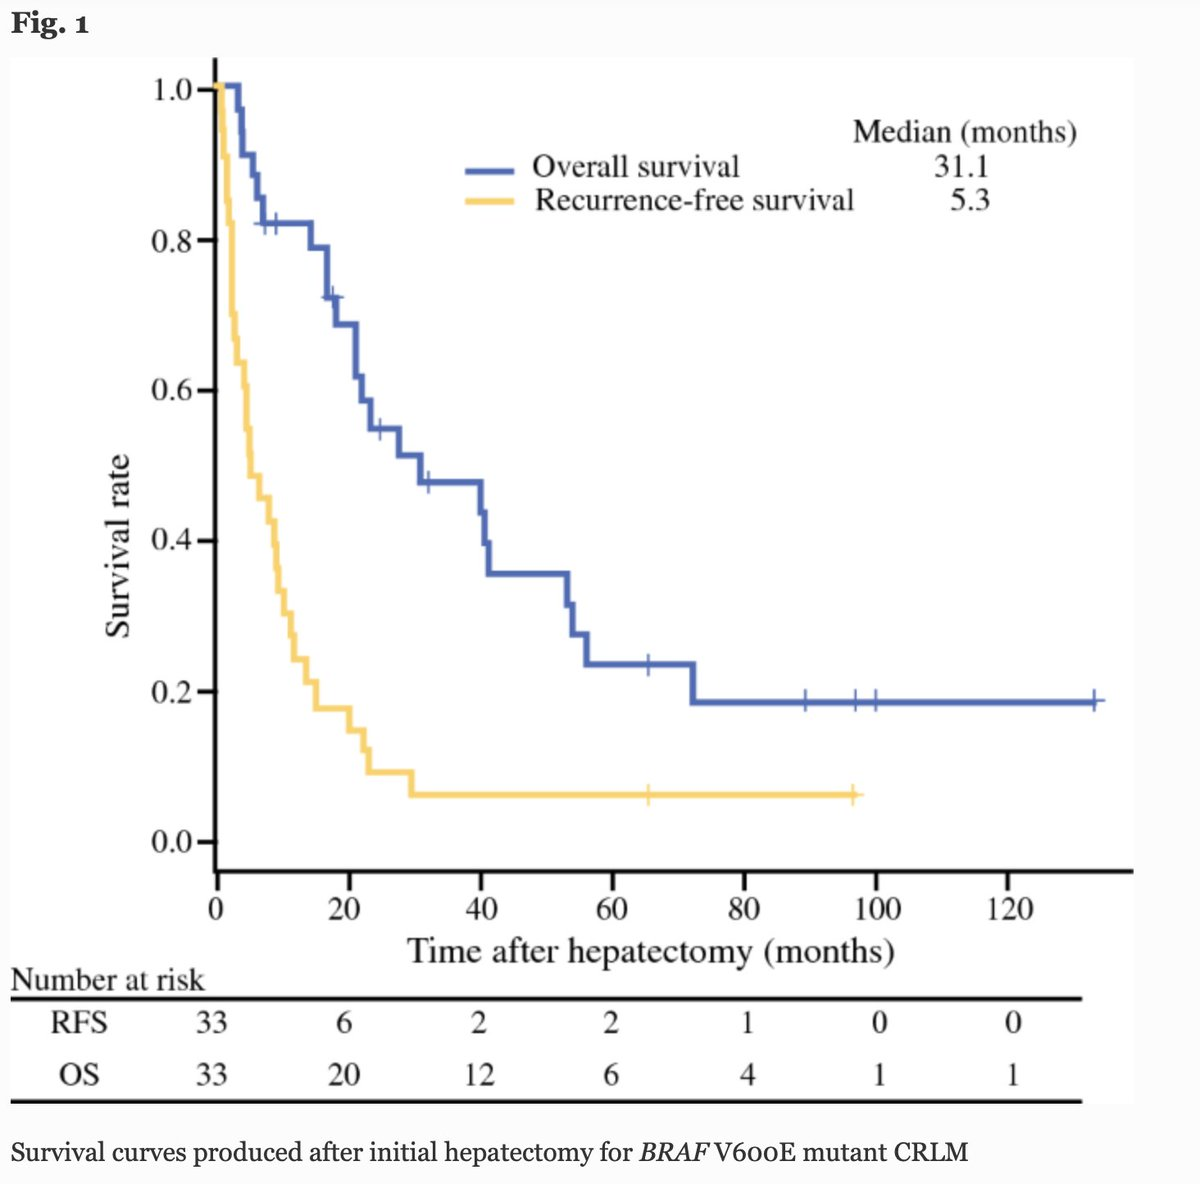 SEPTEMBER ISSUE: Survival Outcomes of Resected BRAF V600E Mutant #ColorectalLiverMetastases: A Multicenter Retrospective Cohort Study in Japan. https://t.co/W0sUbWMIEf @McMastersKelly  @SocSurgOnc https://t.co/Xlrw4jacaC